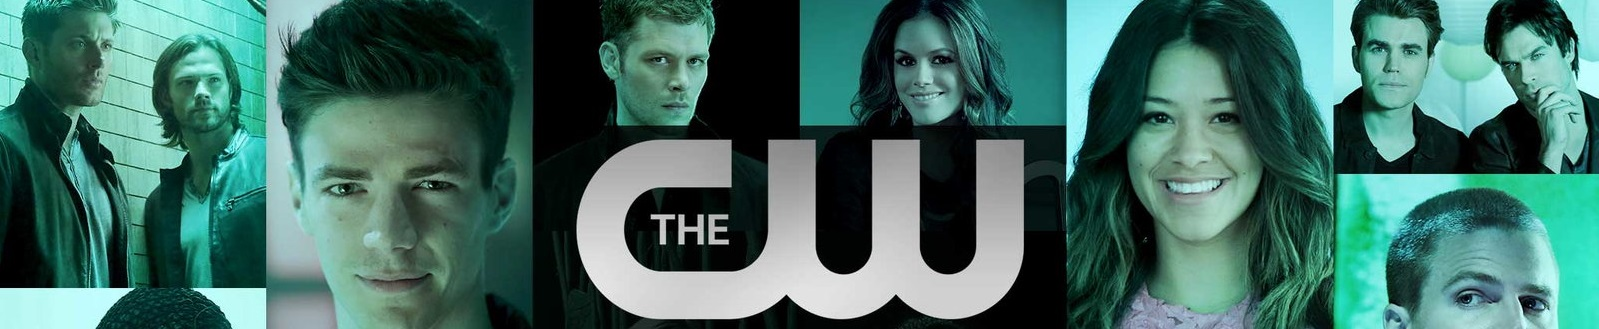 The cw banner2